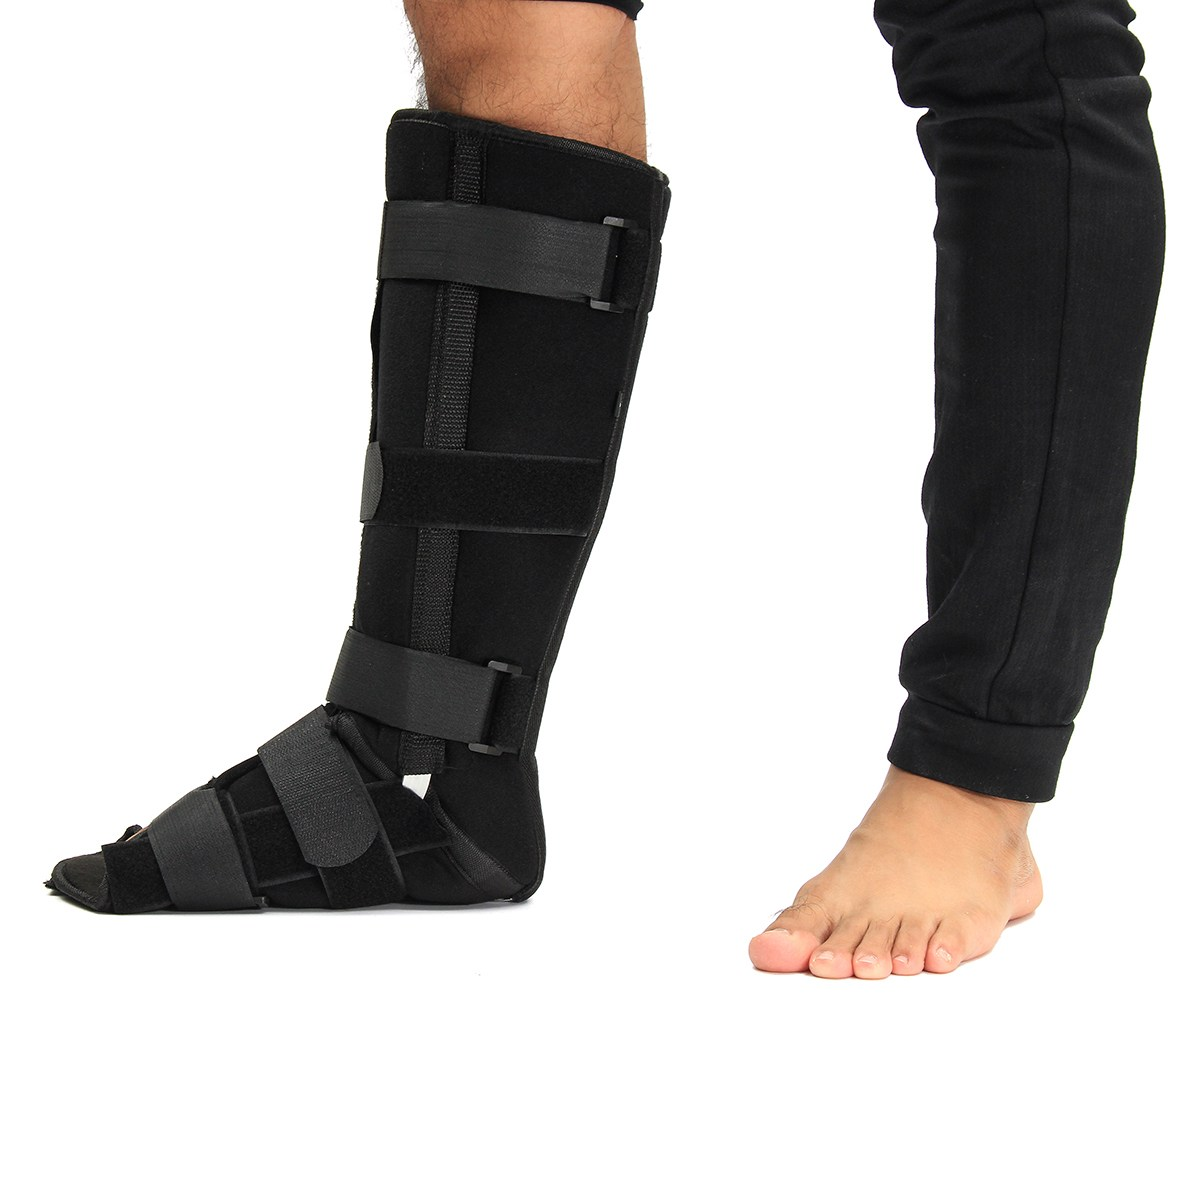 Hot sale S/M/L Size Safety Ankle support Sport Elastic Splint Strap Foot Support Orthosis Stabilizer Brace Guard Ankle Protector